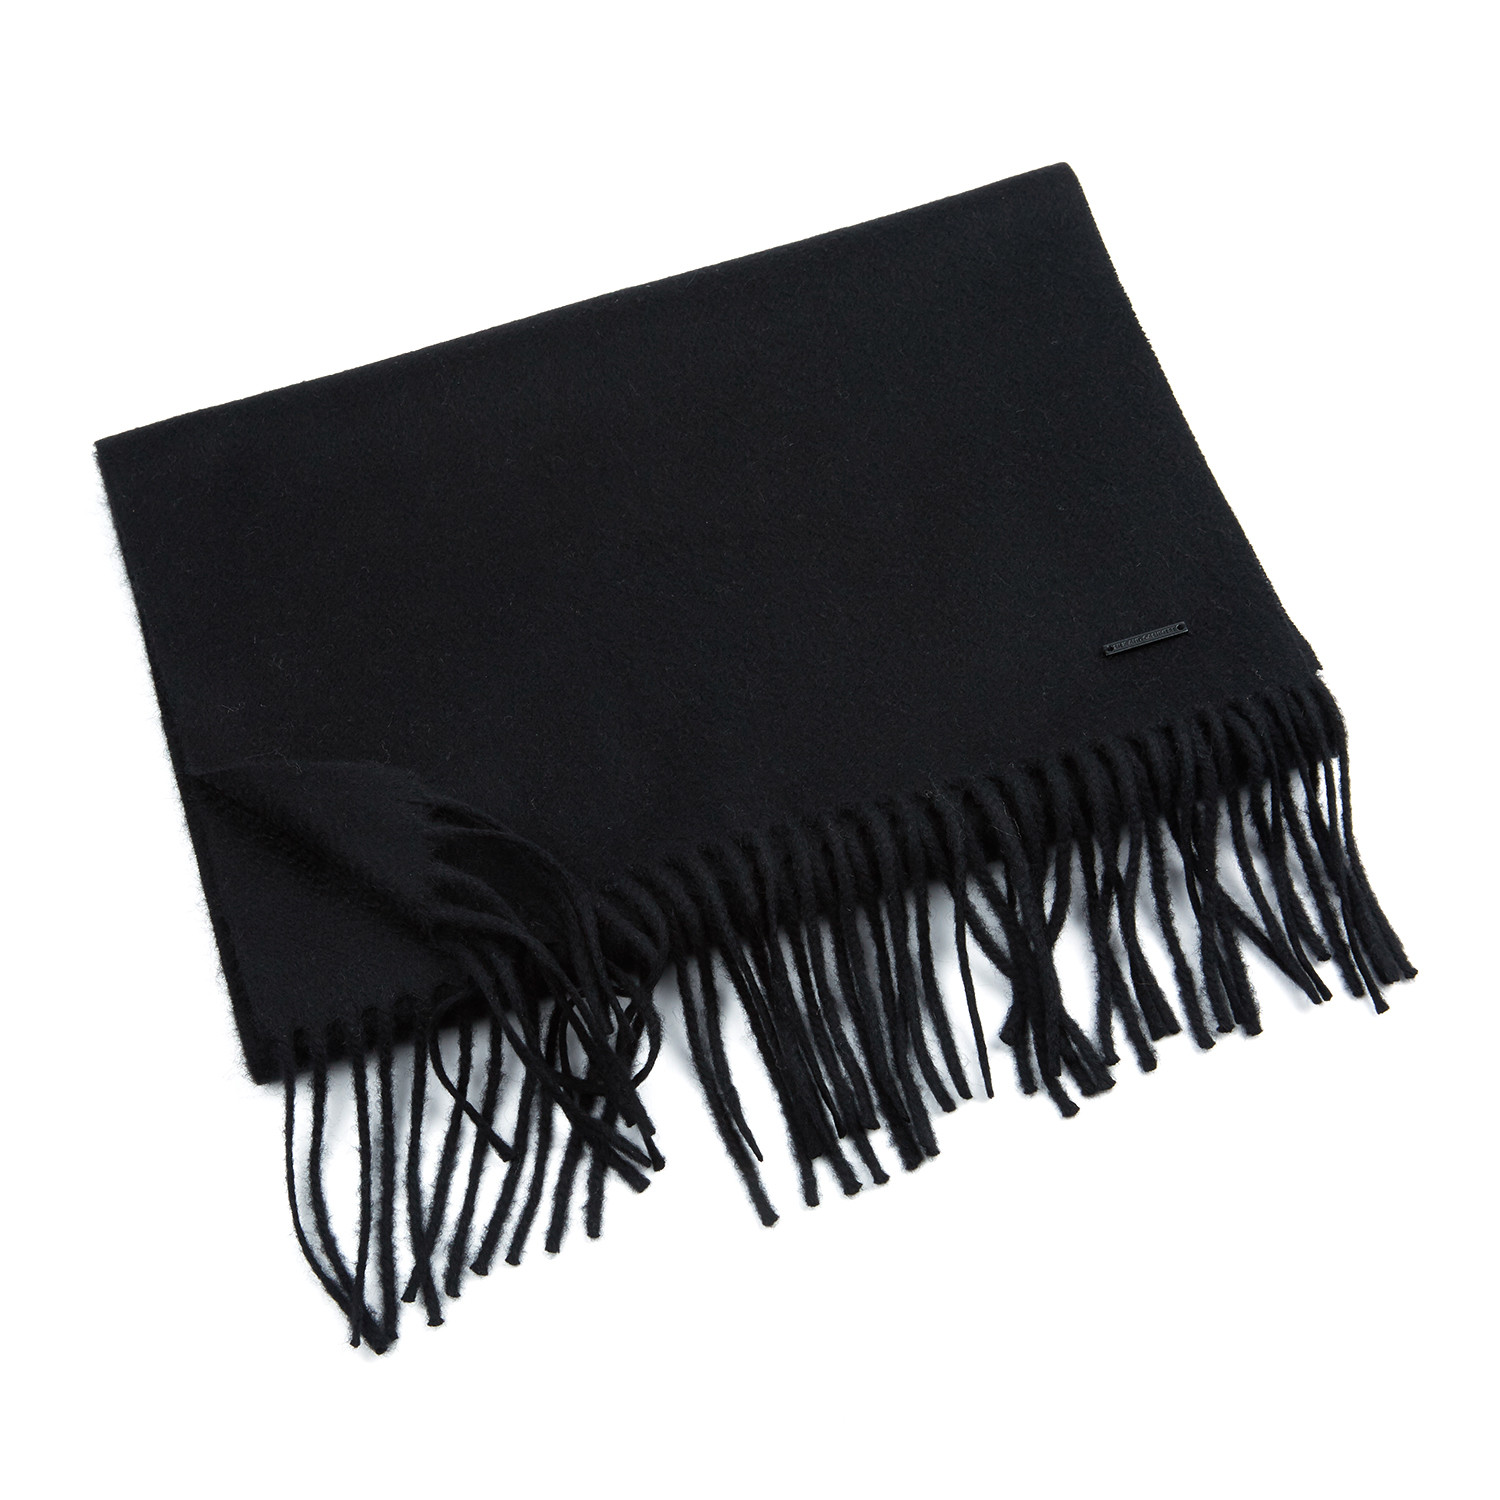 black singles in cashmere Shop for womens cashmere coat on etsy, the place to express your creativity through the buying and selling of handmade and vintage goods.